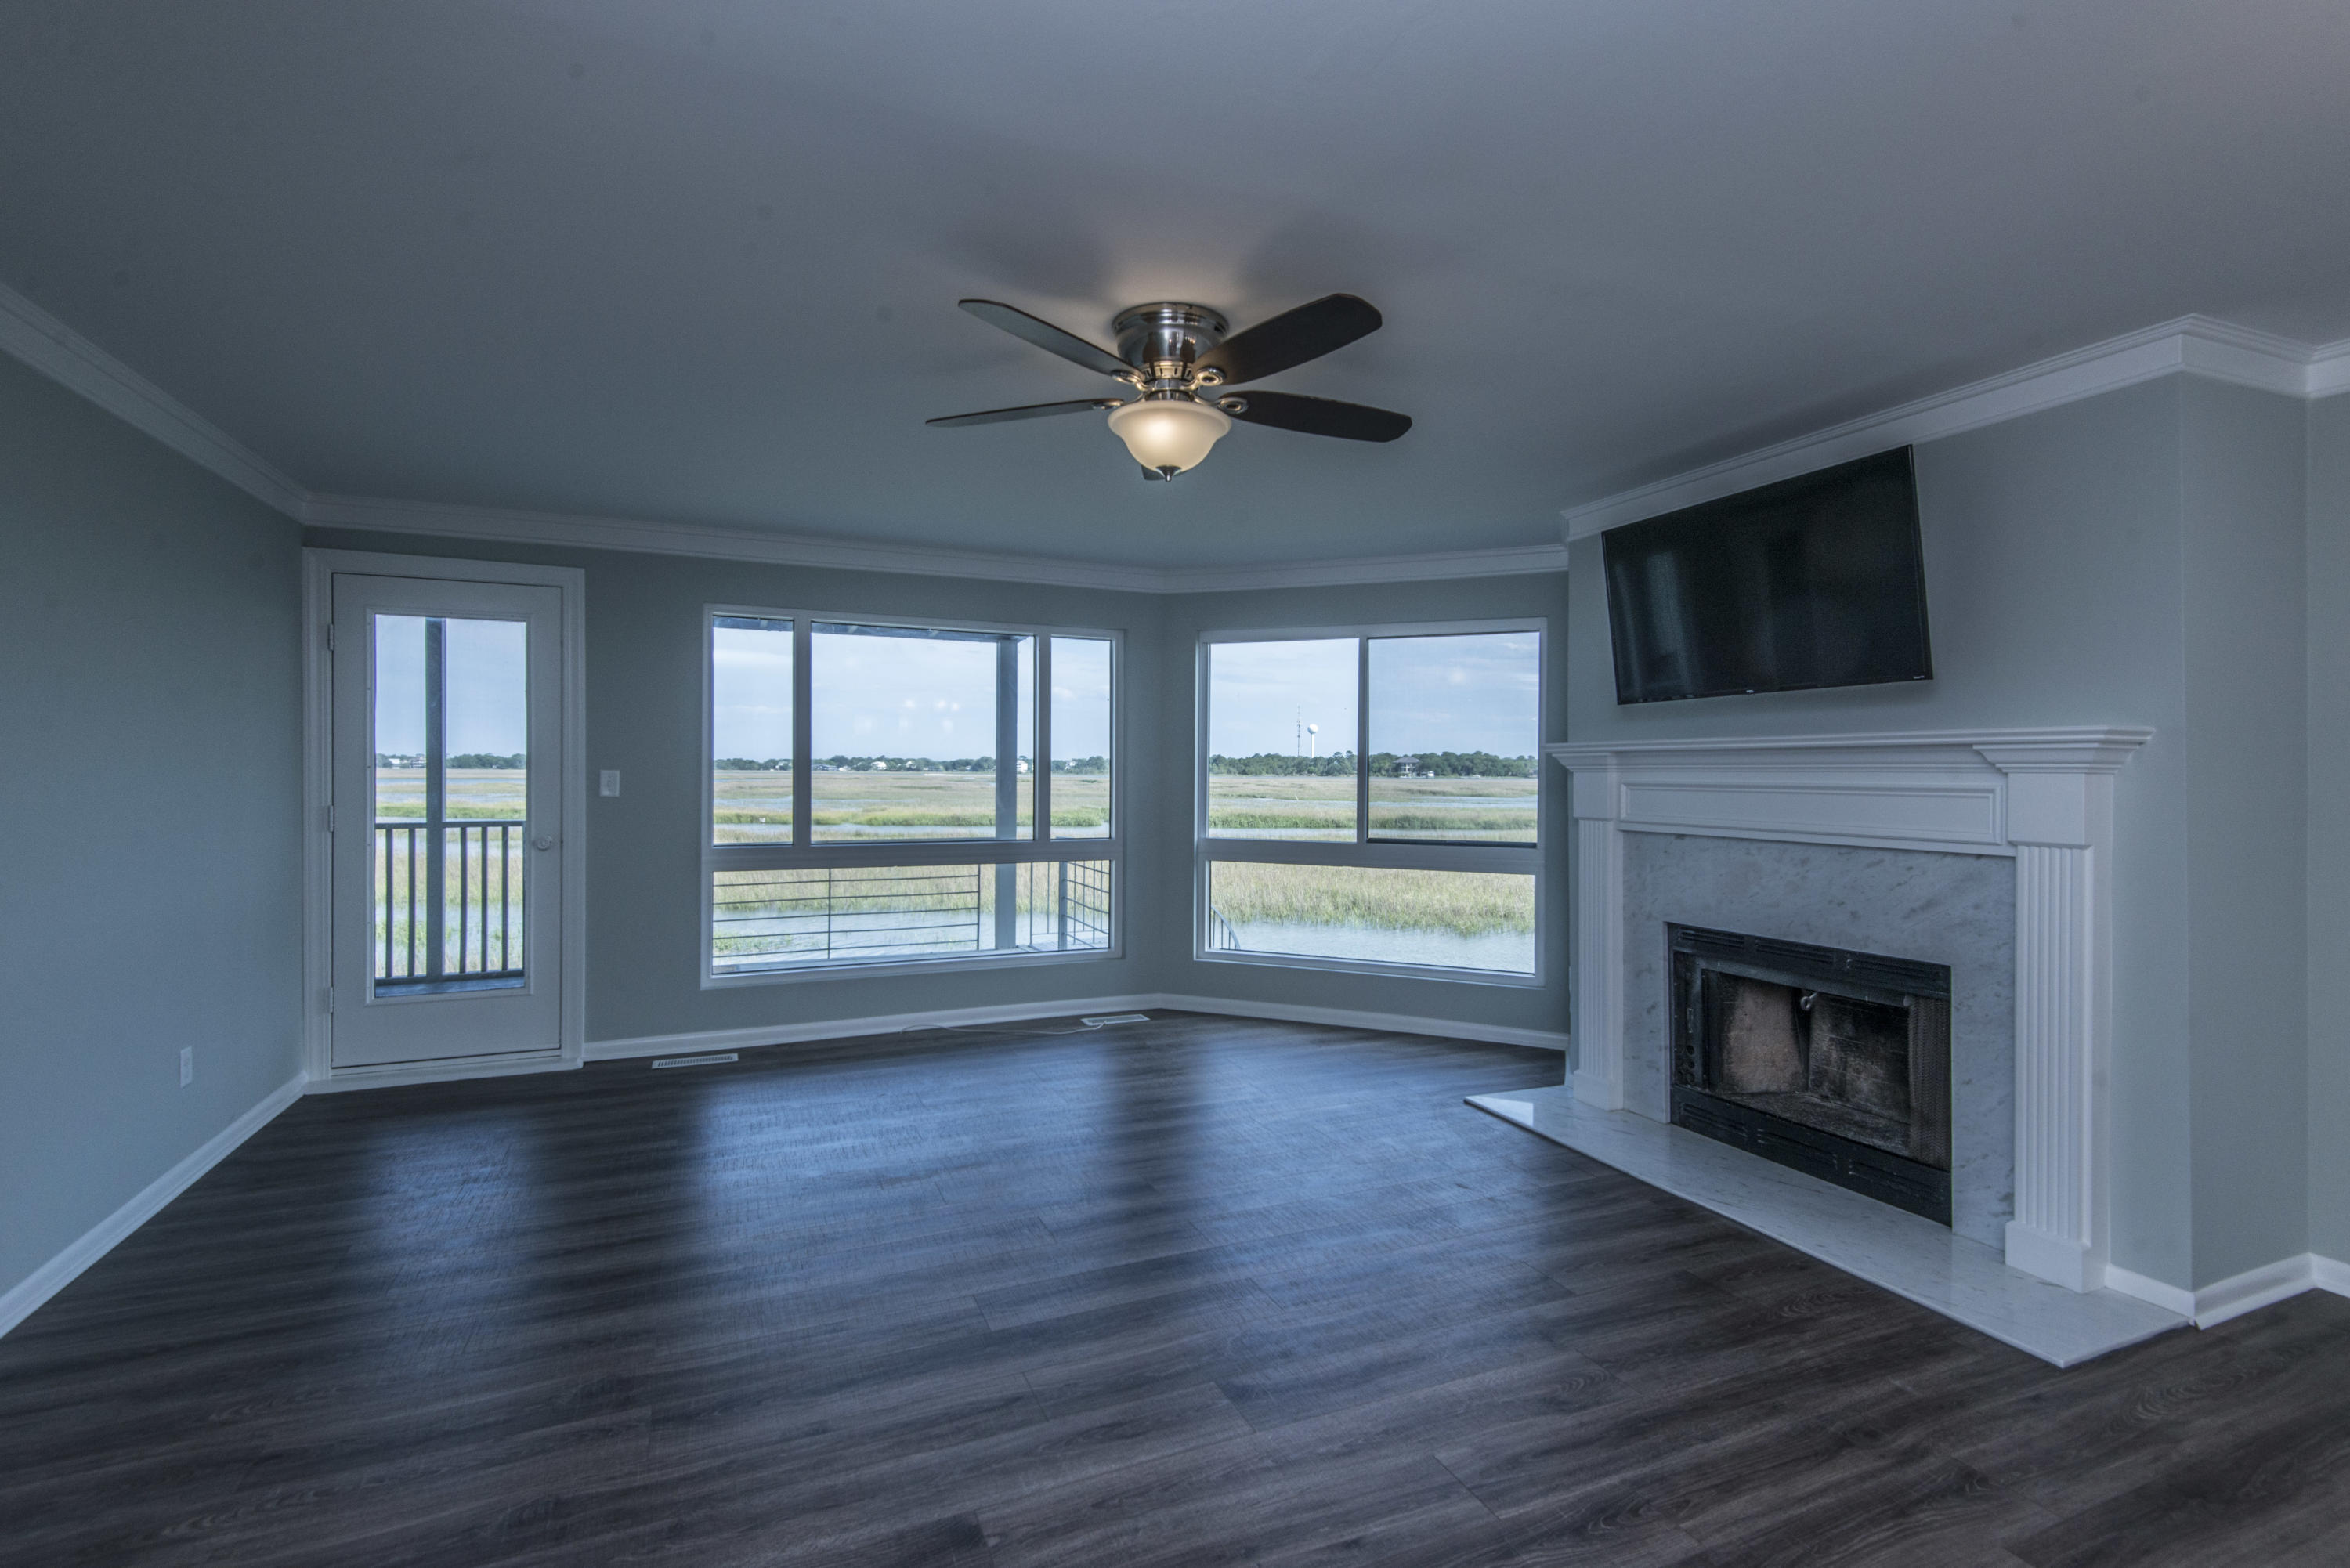 Little Oak Island Homes For Sale - 251 Little Oak, Folly Beach, SC - 25